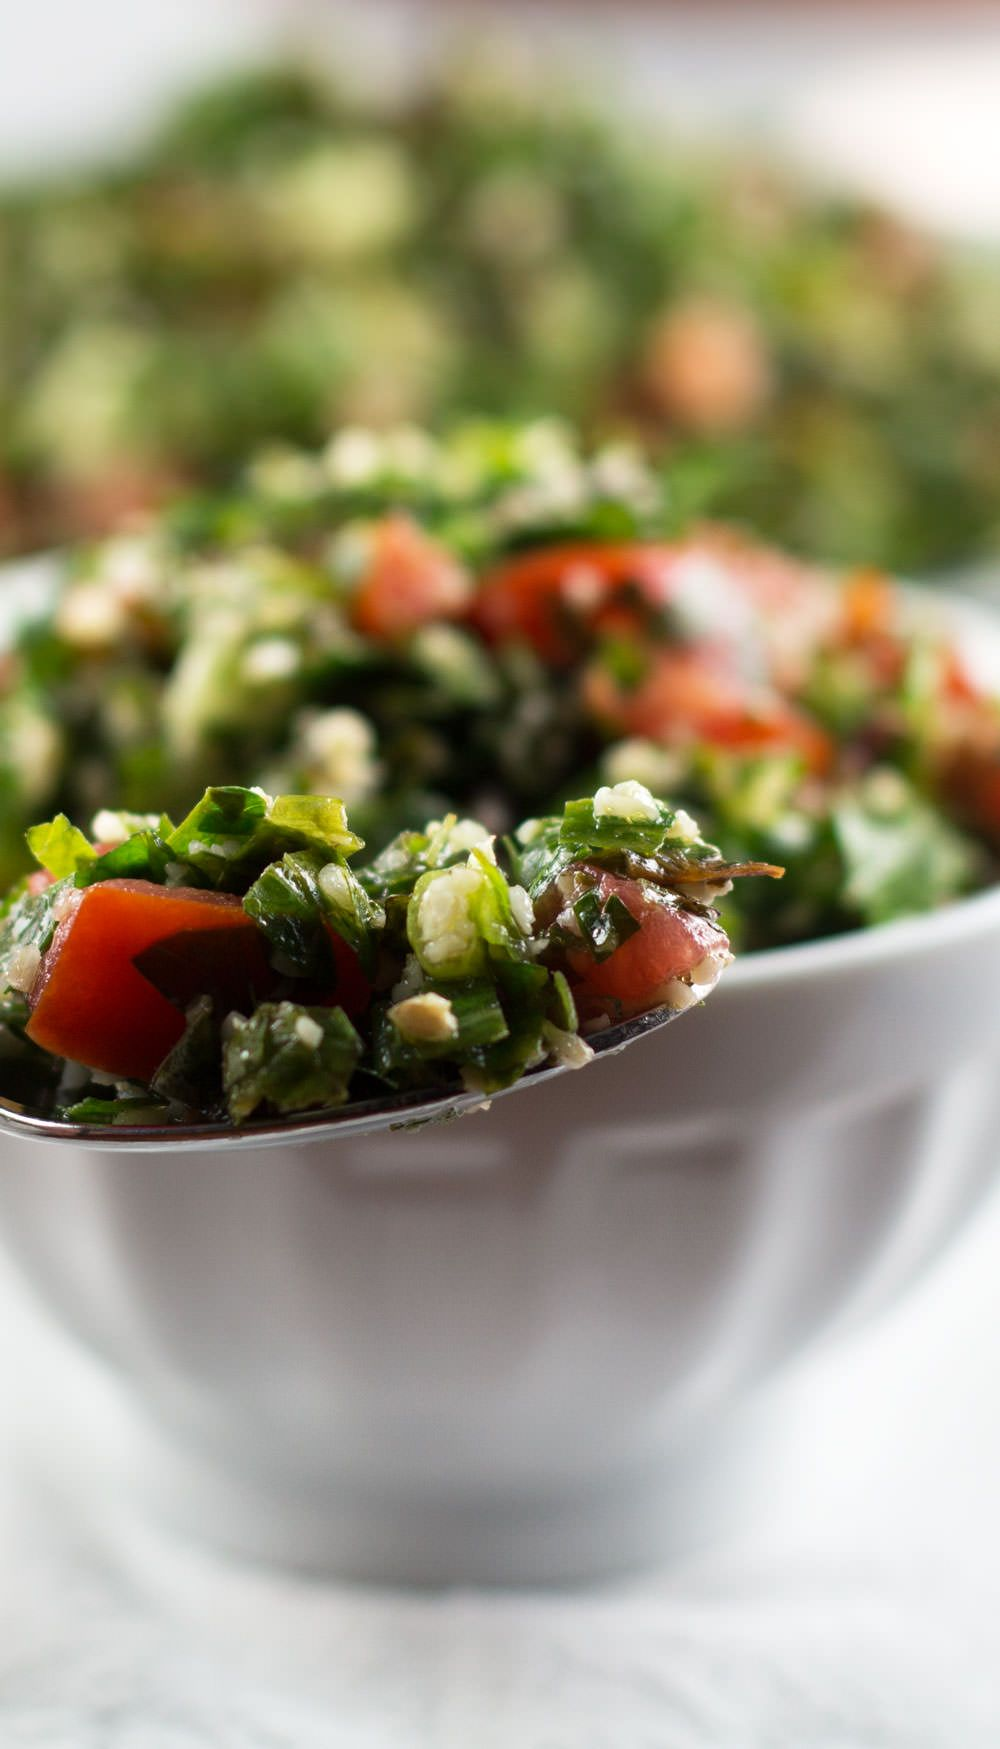 Not Quite Traditional Tabouli - A Middle Eastern Salad perfect for using end-of-summer herbs and tomatoes. From Mother Would Know